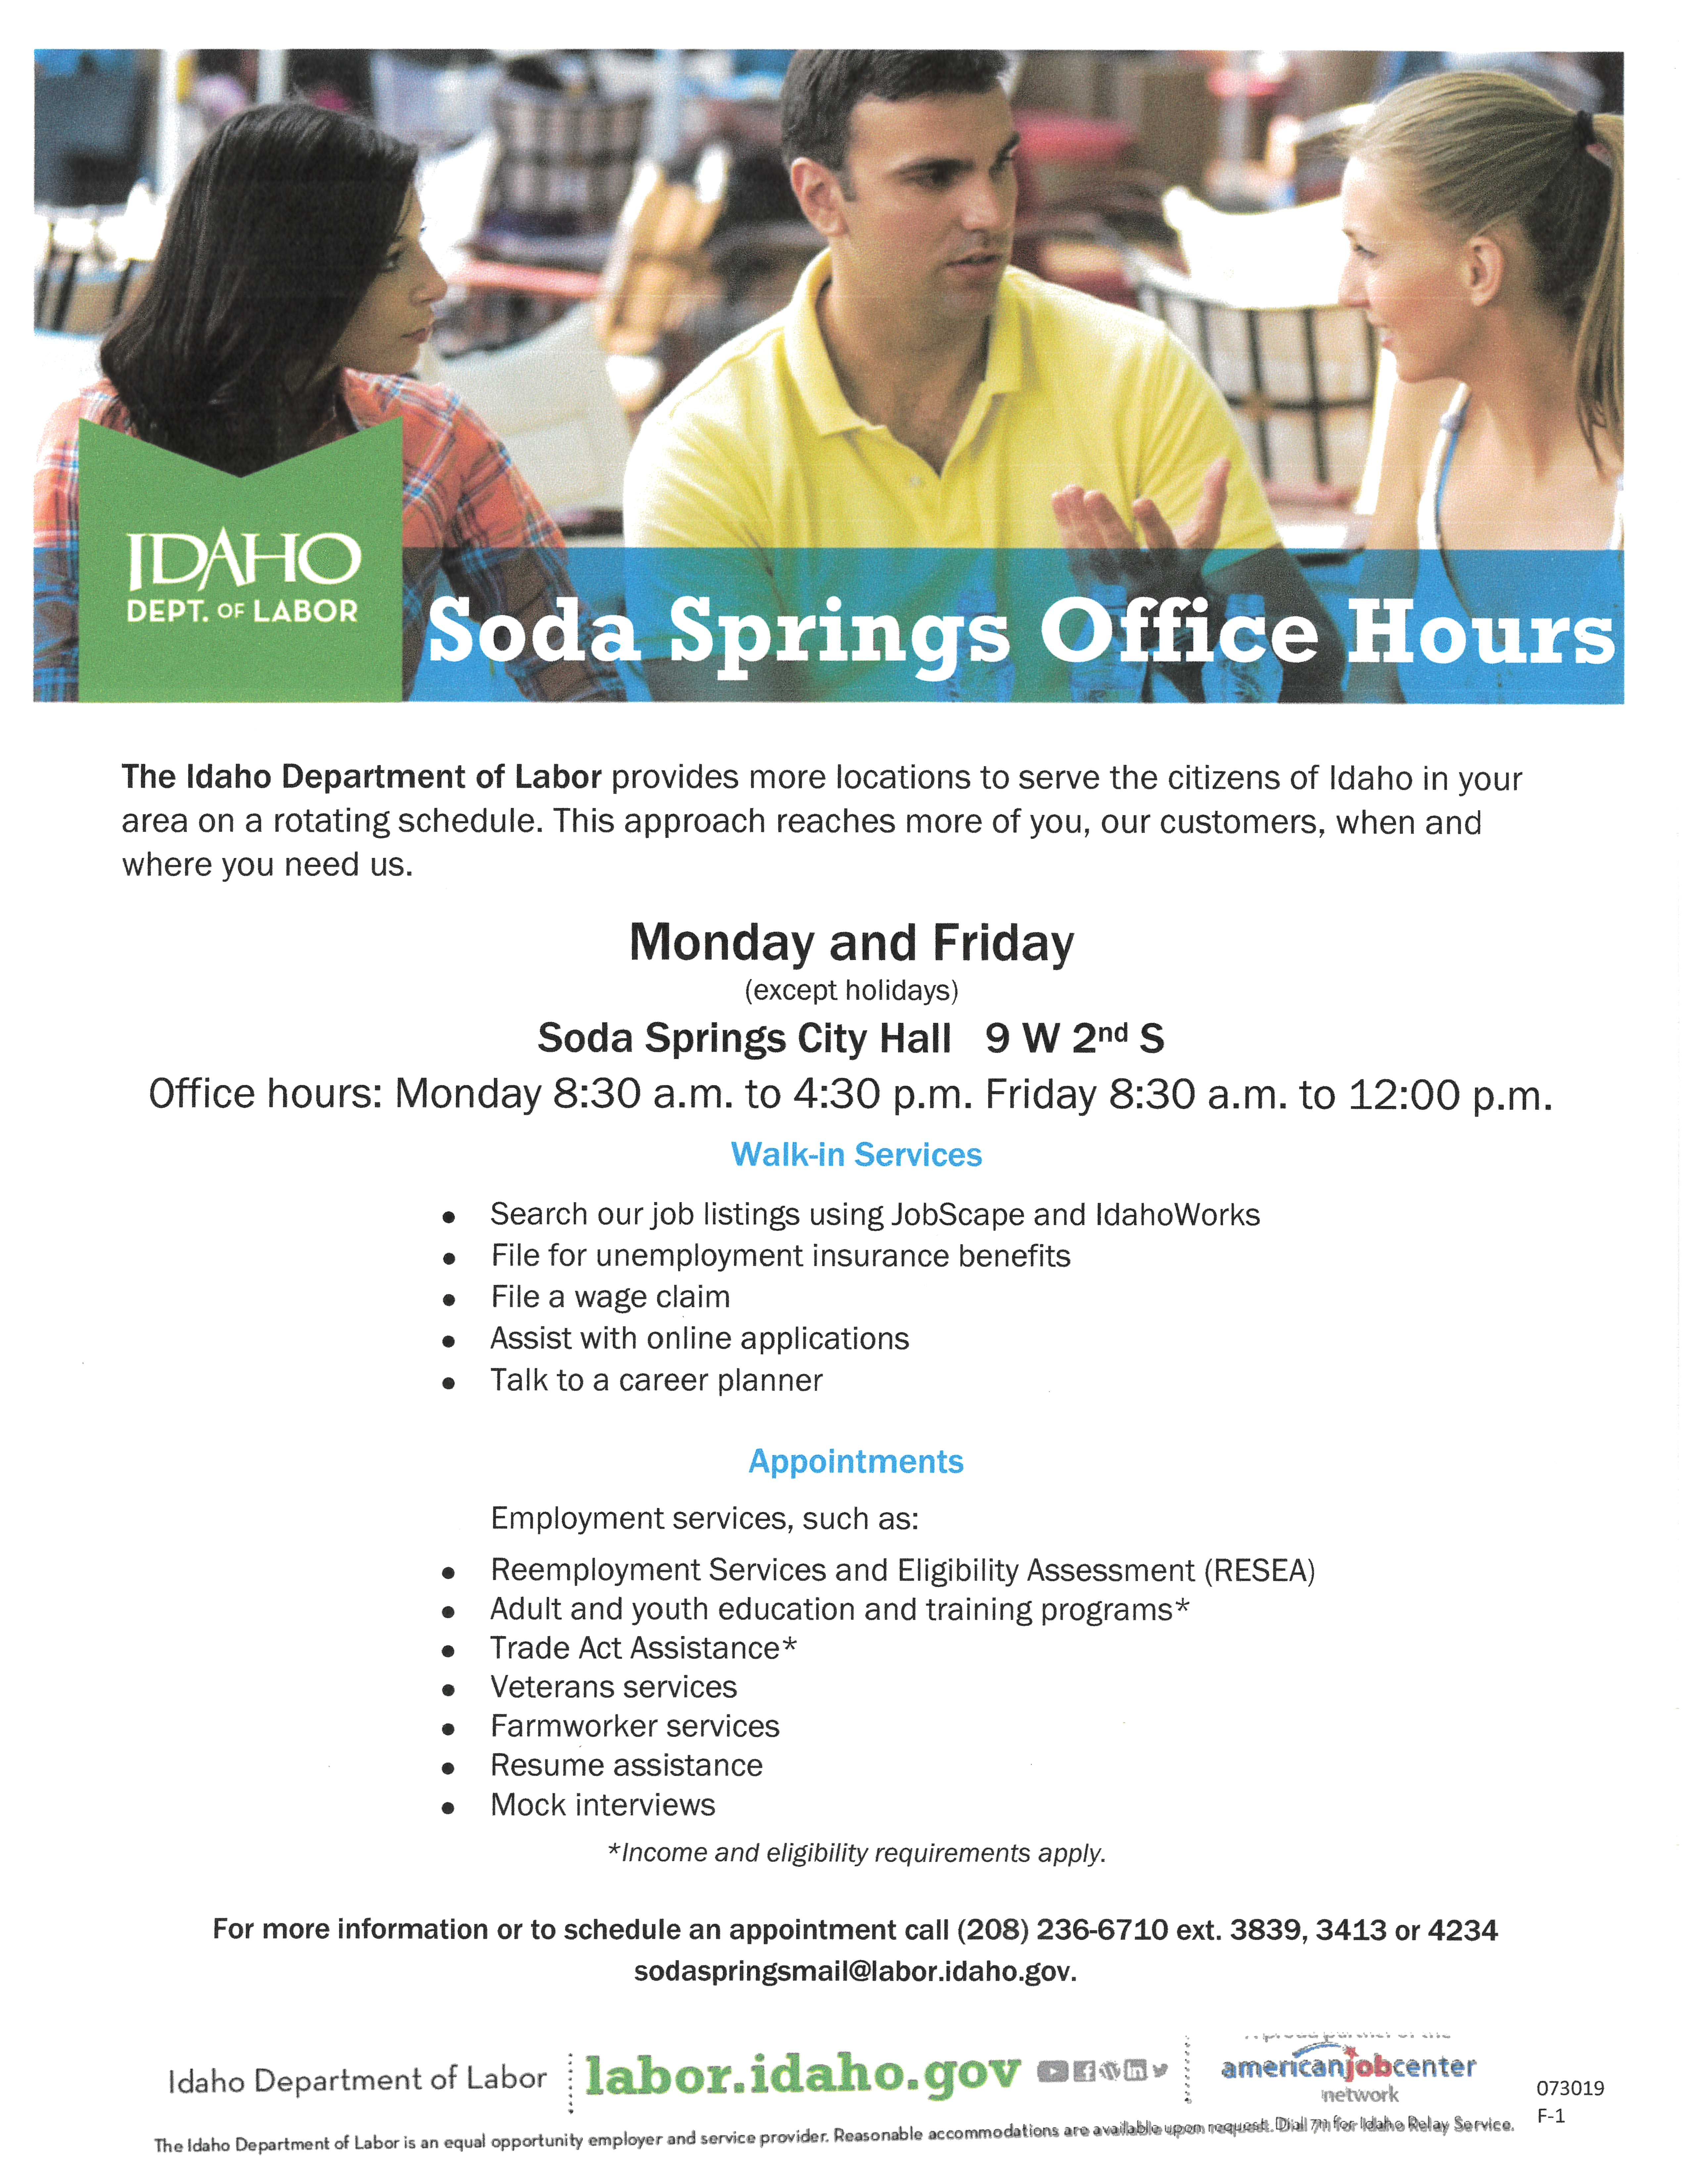 DEPT OF LABOR HOURS